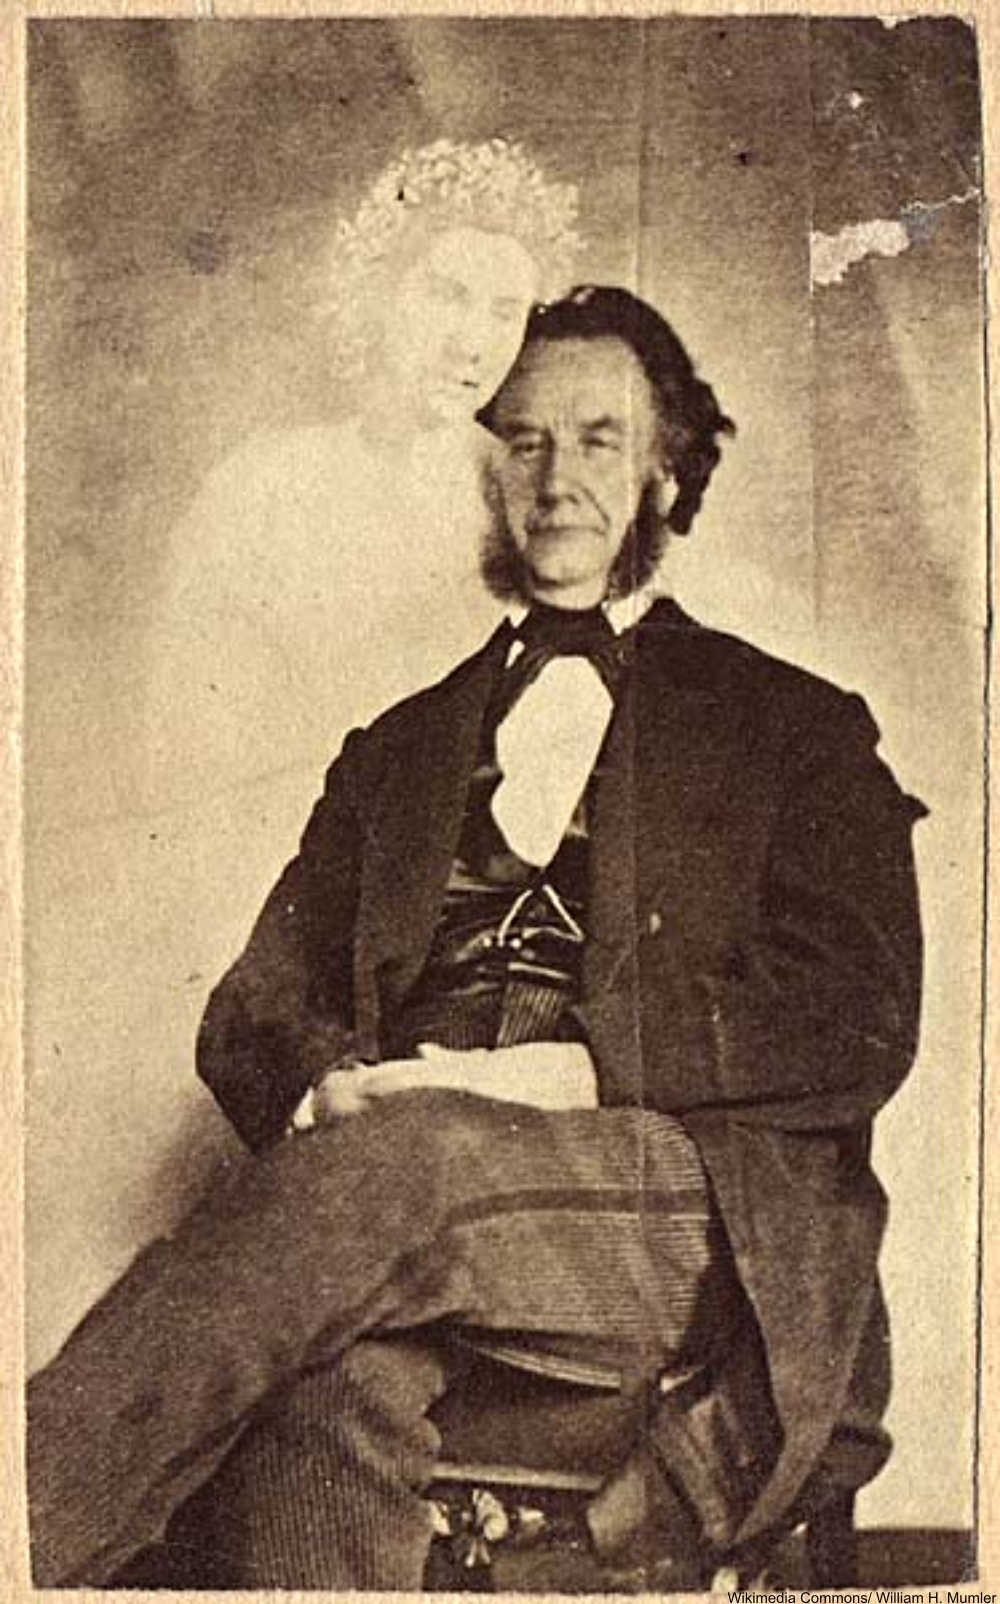 Moses A. Dow, Editor of Waverley Magazine, with the spirit of Mabel Warren, 1871